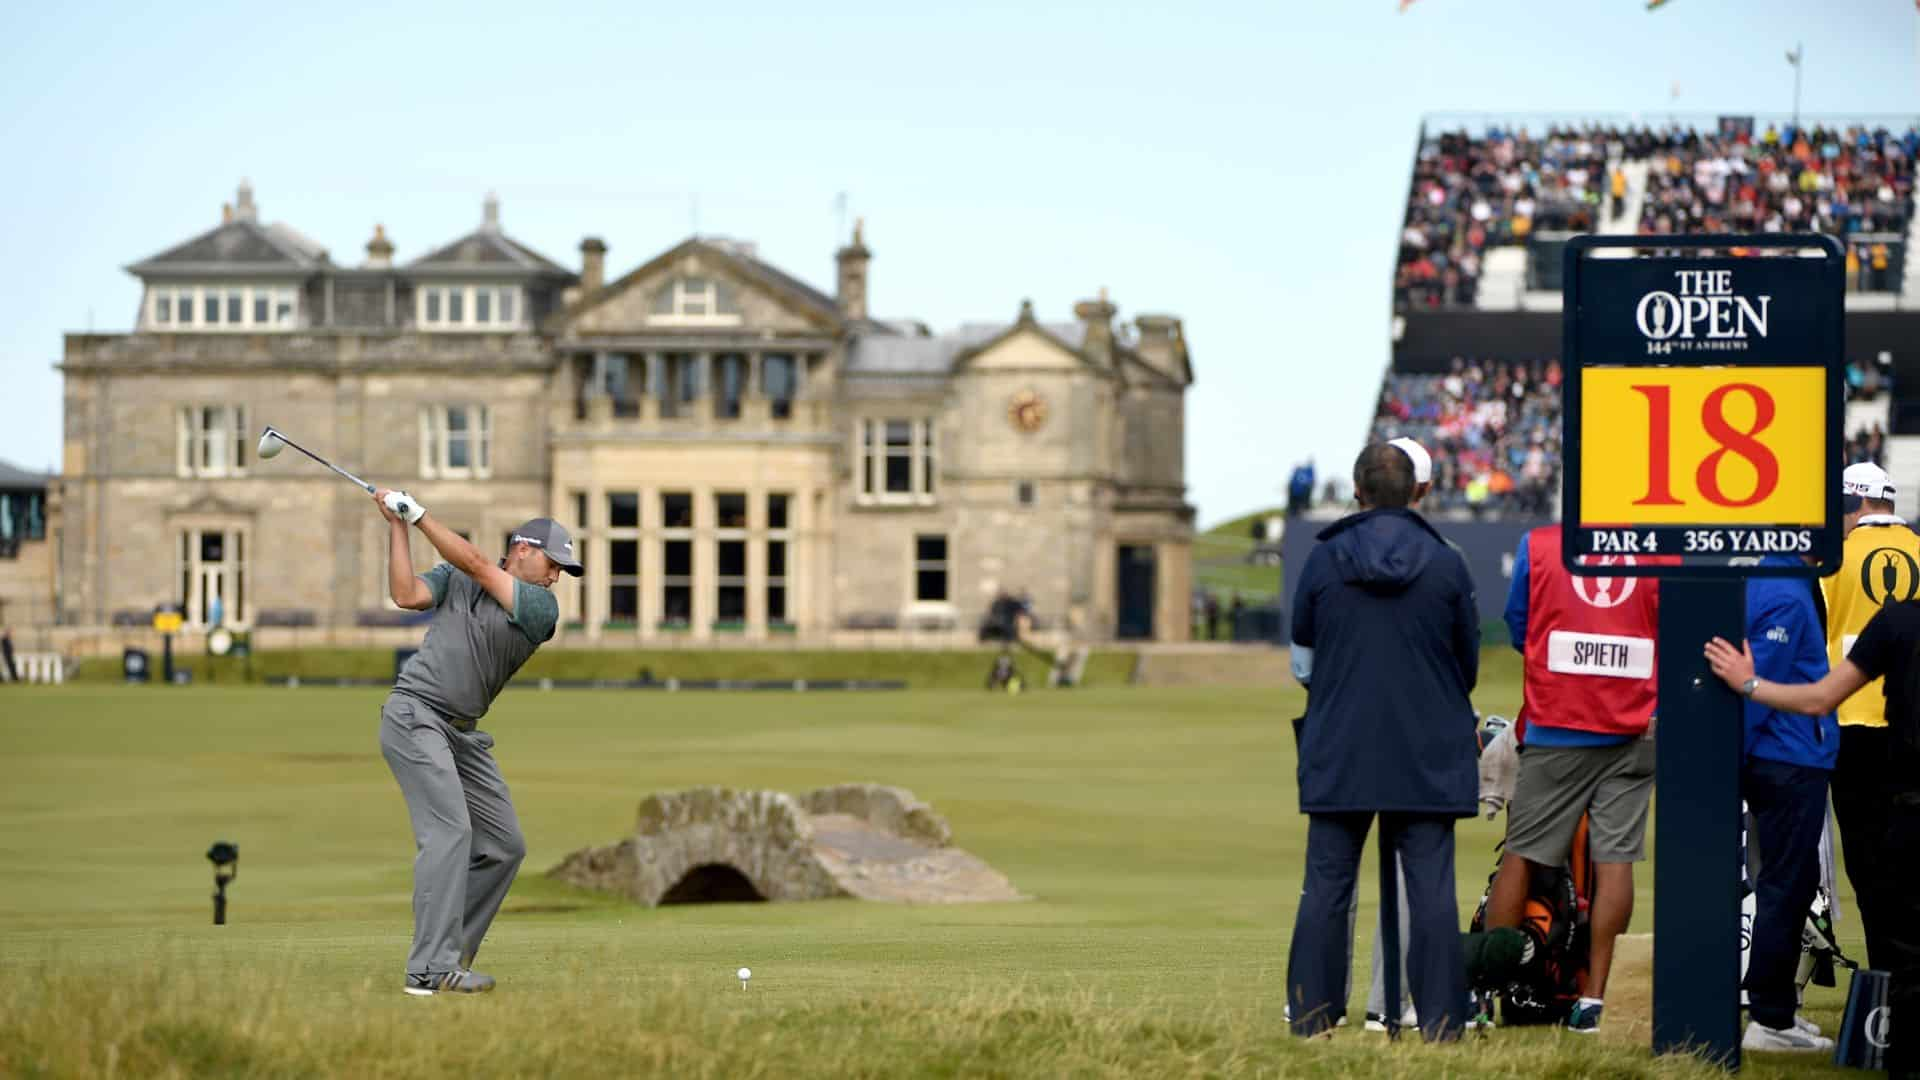 The 150th Open Championship in 2022 at St Andrews